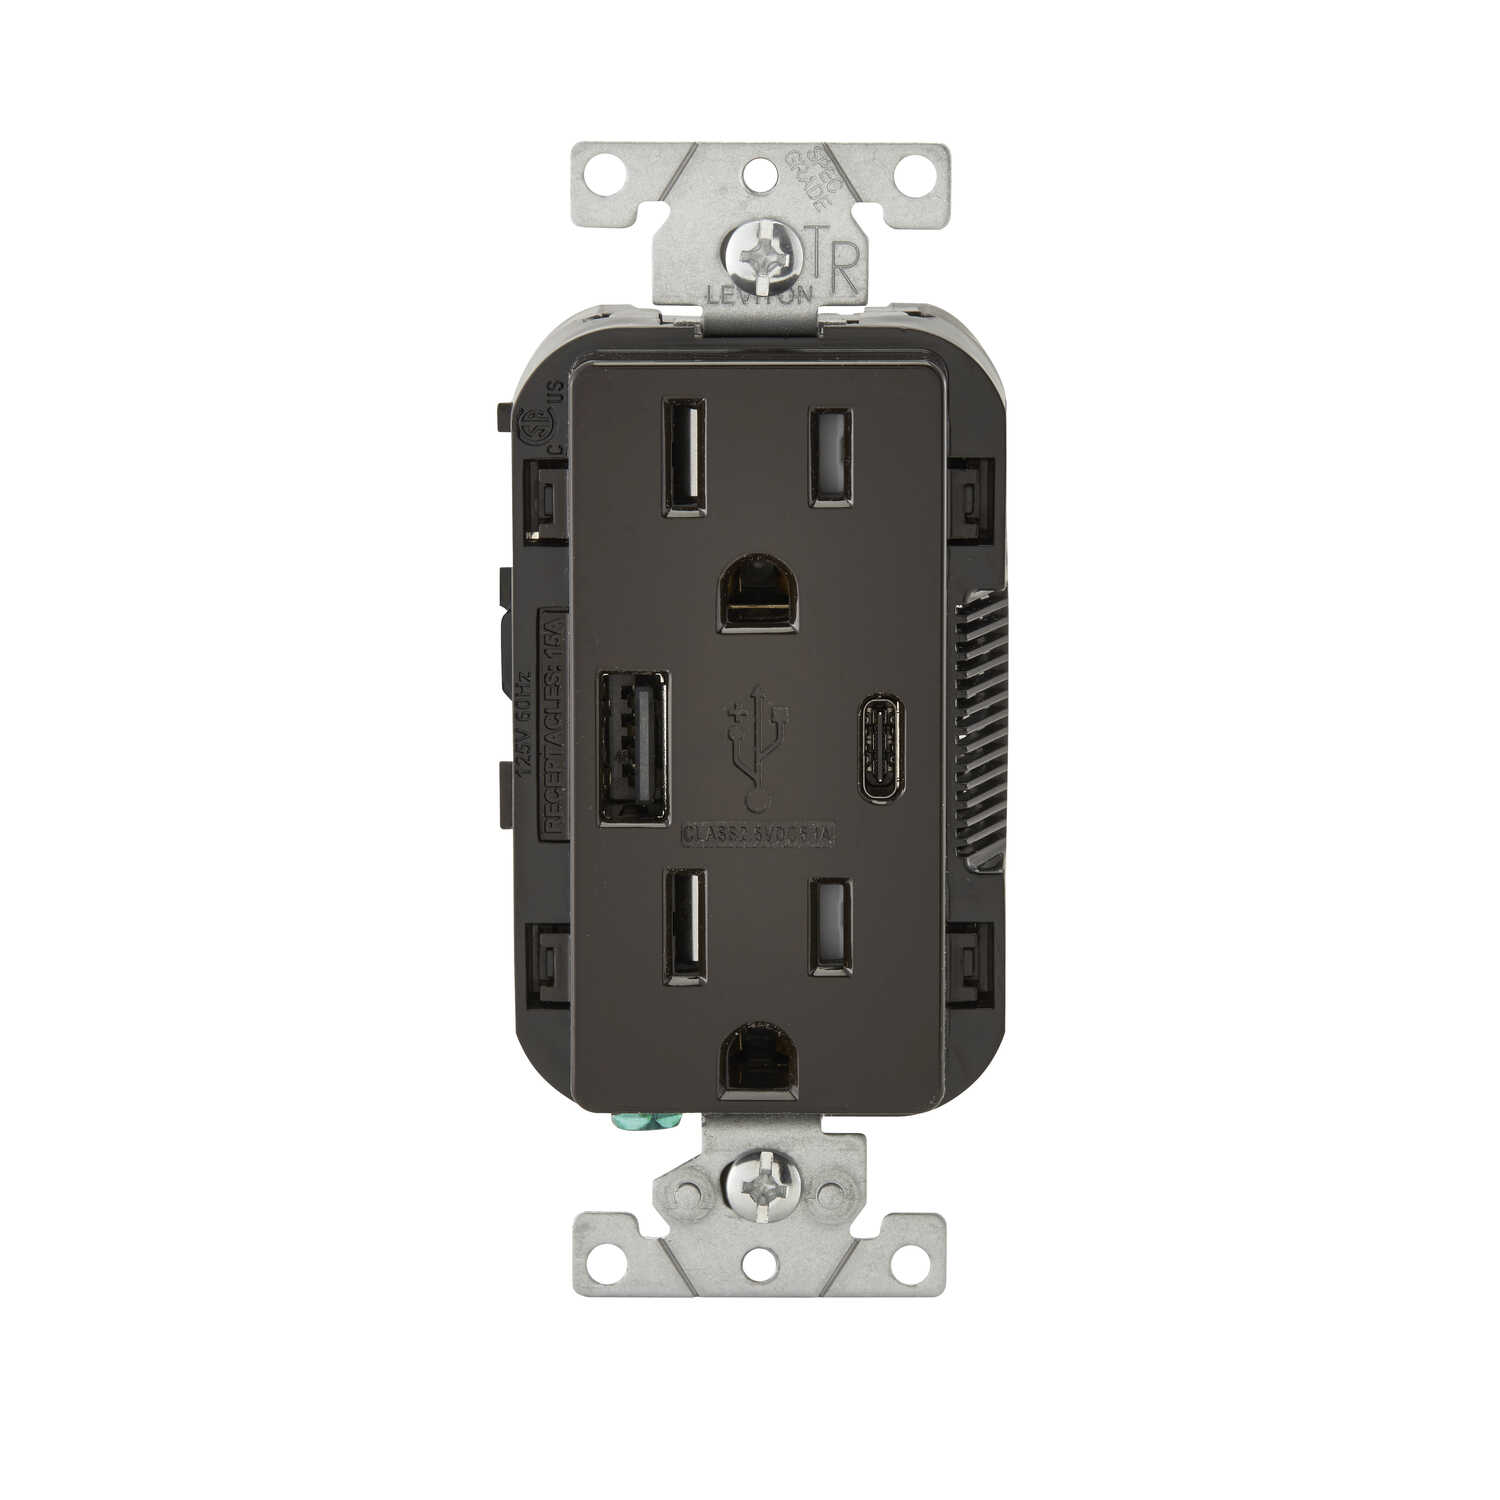 Leviton  Decora  15 amps 125 volt Brown  Outlet and USB Charger  5-15R  1 pk